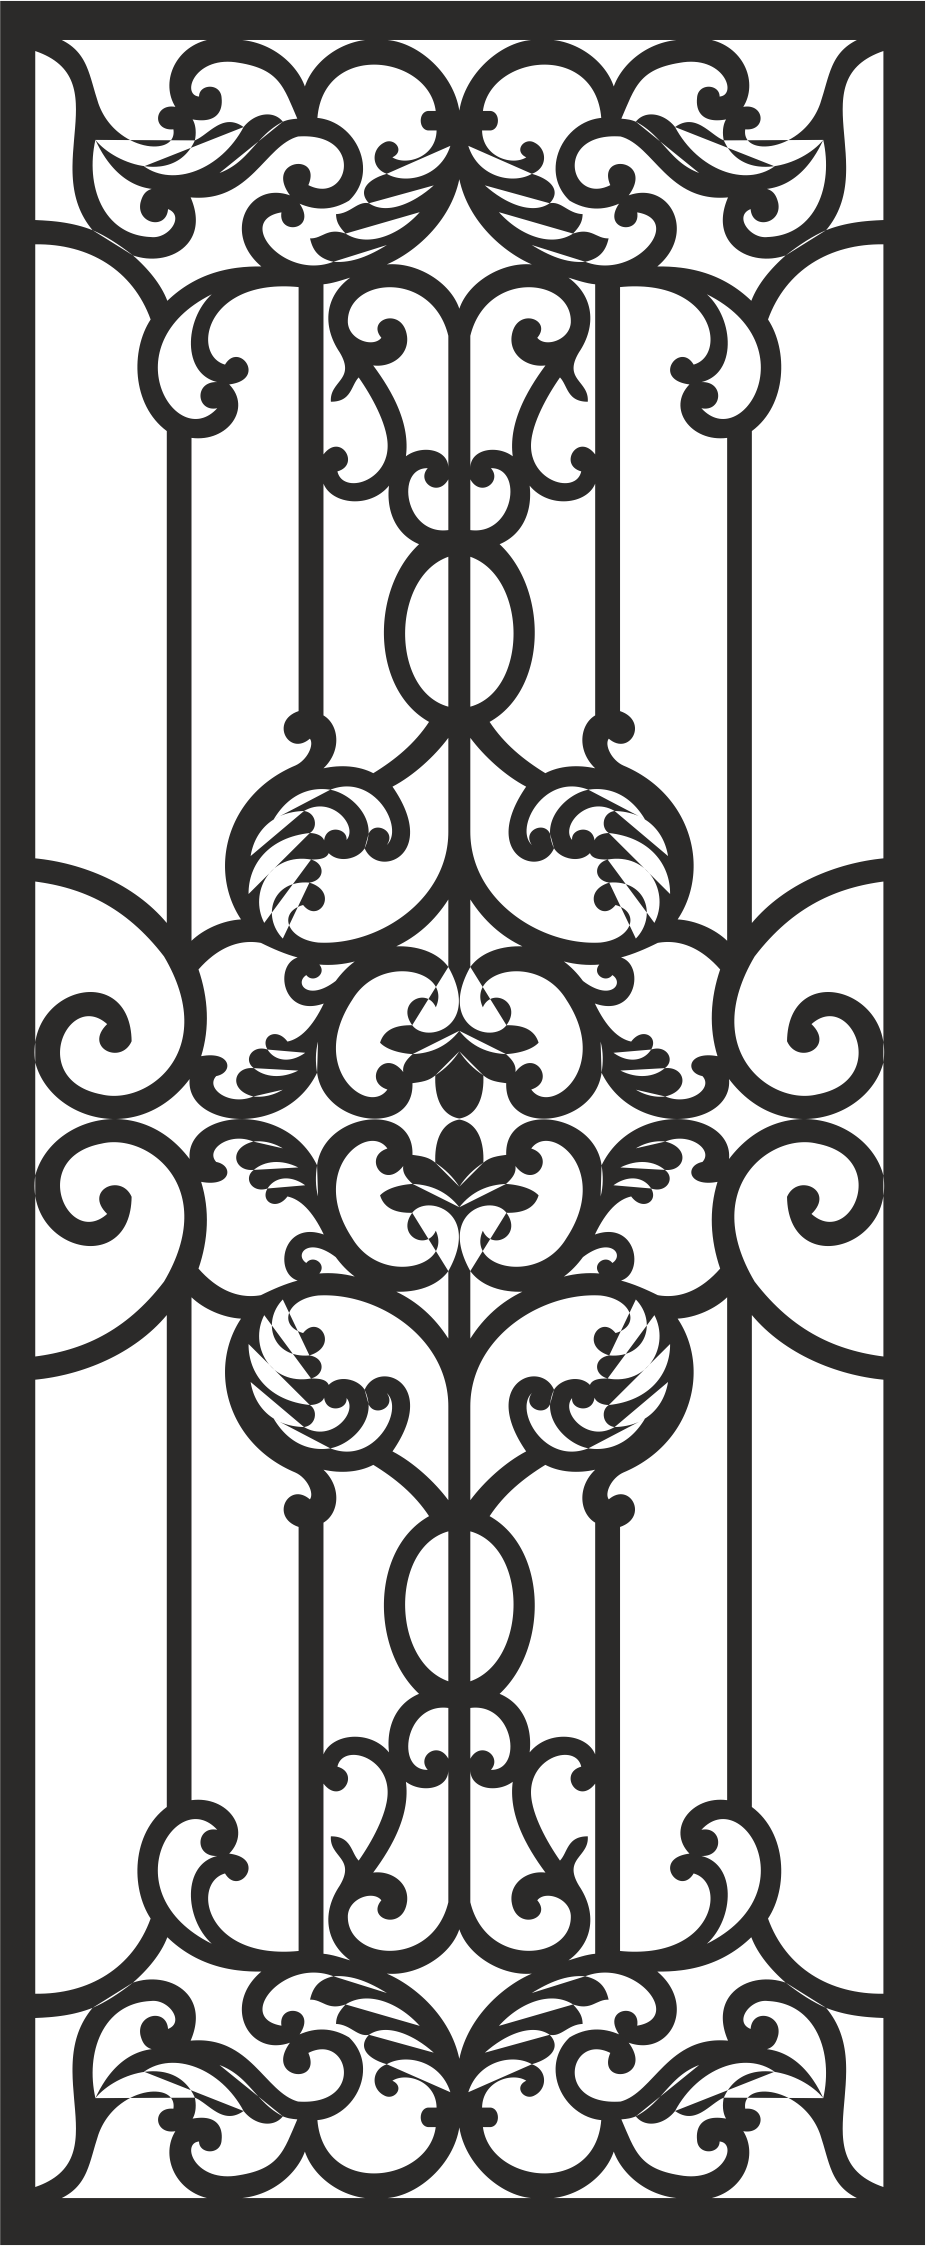 Home Iron Grills Design Vector CDR File